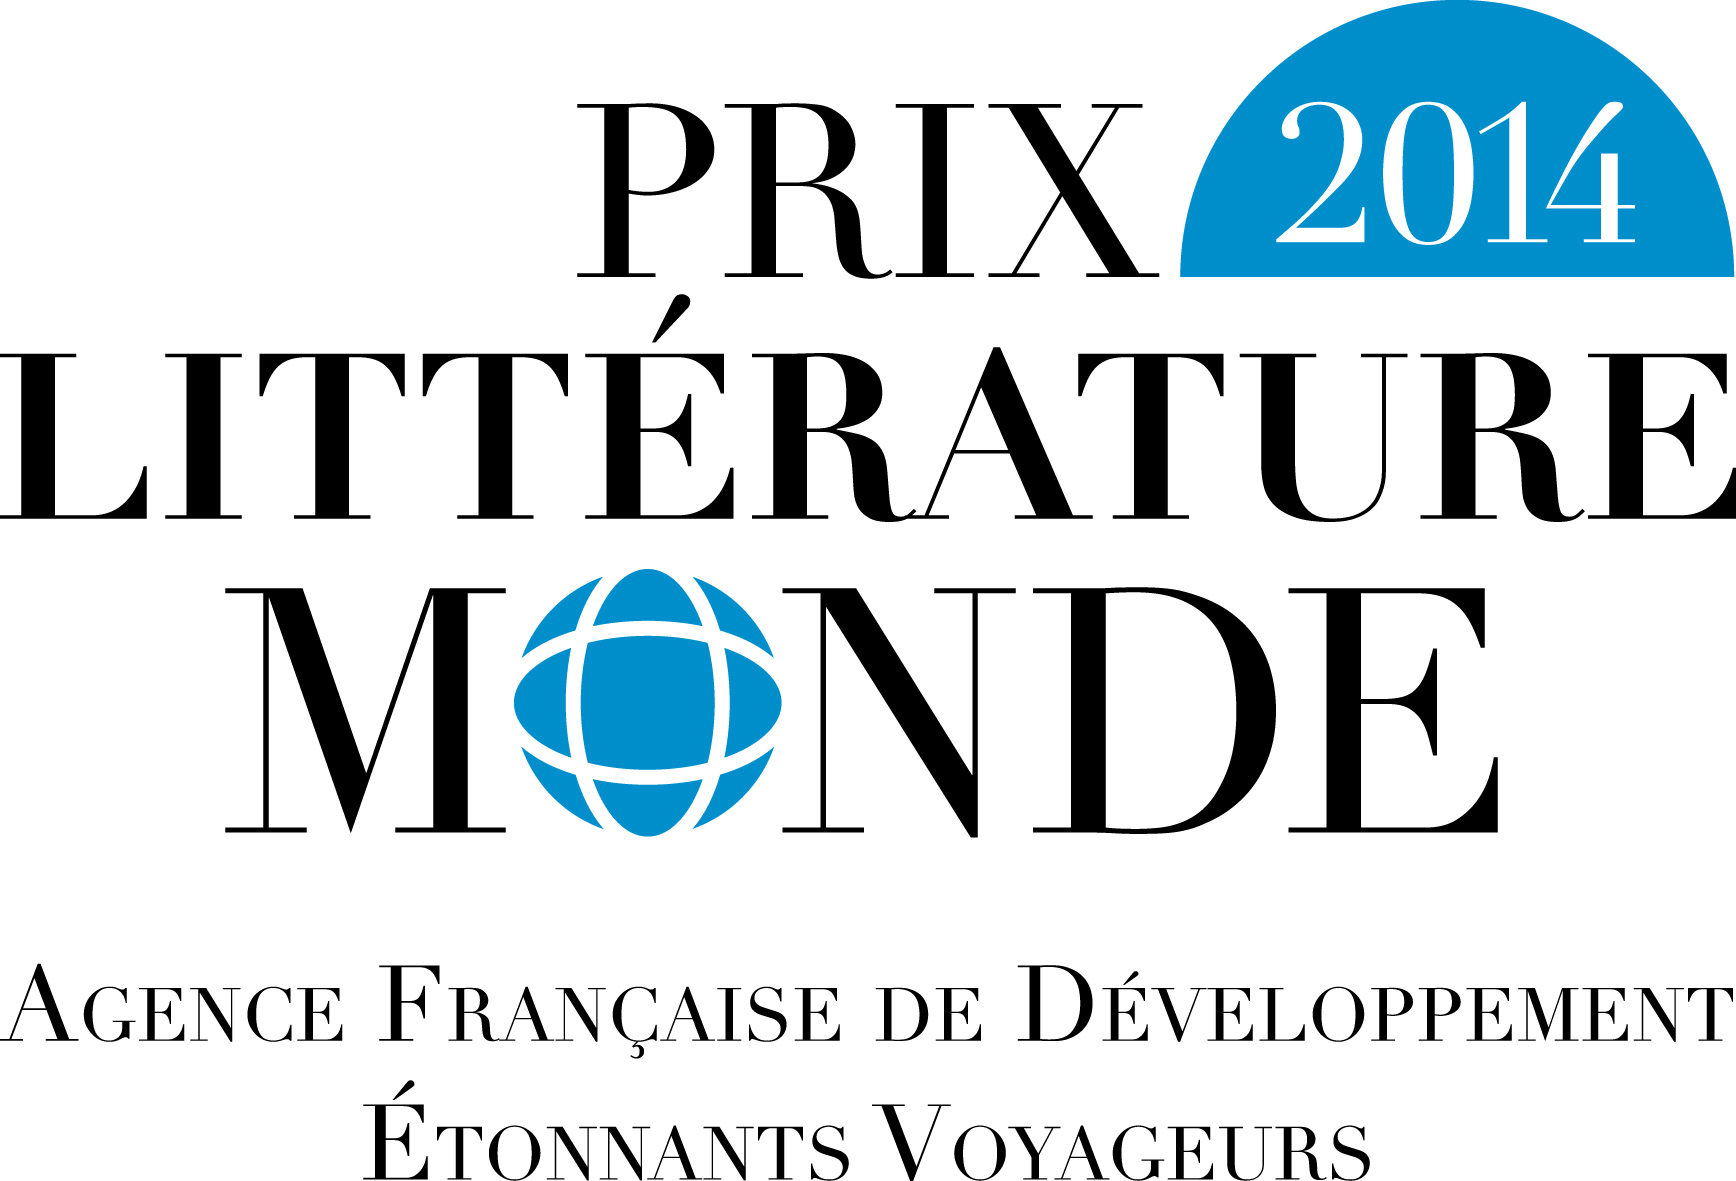 prixLitteratureMonde logo